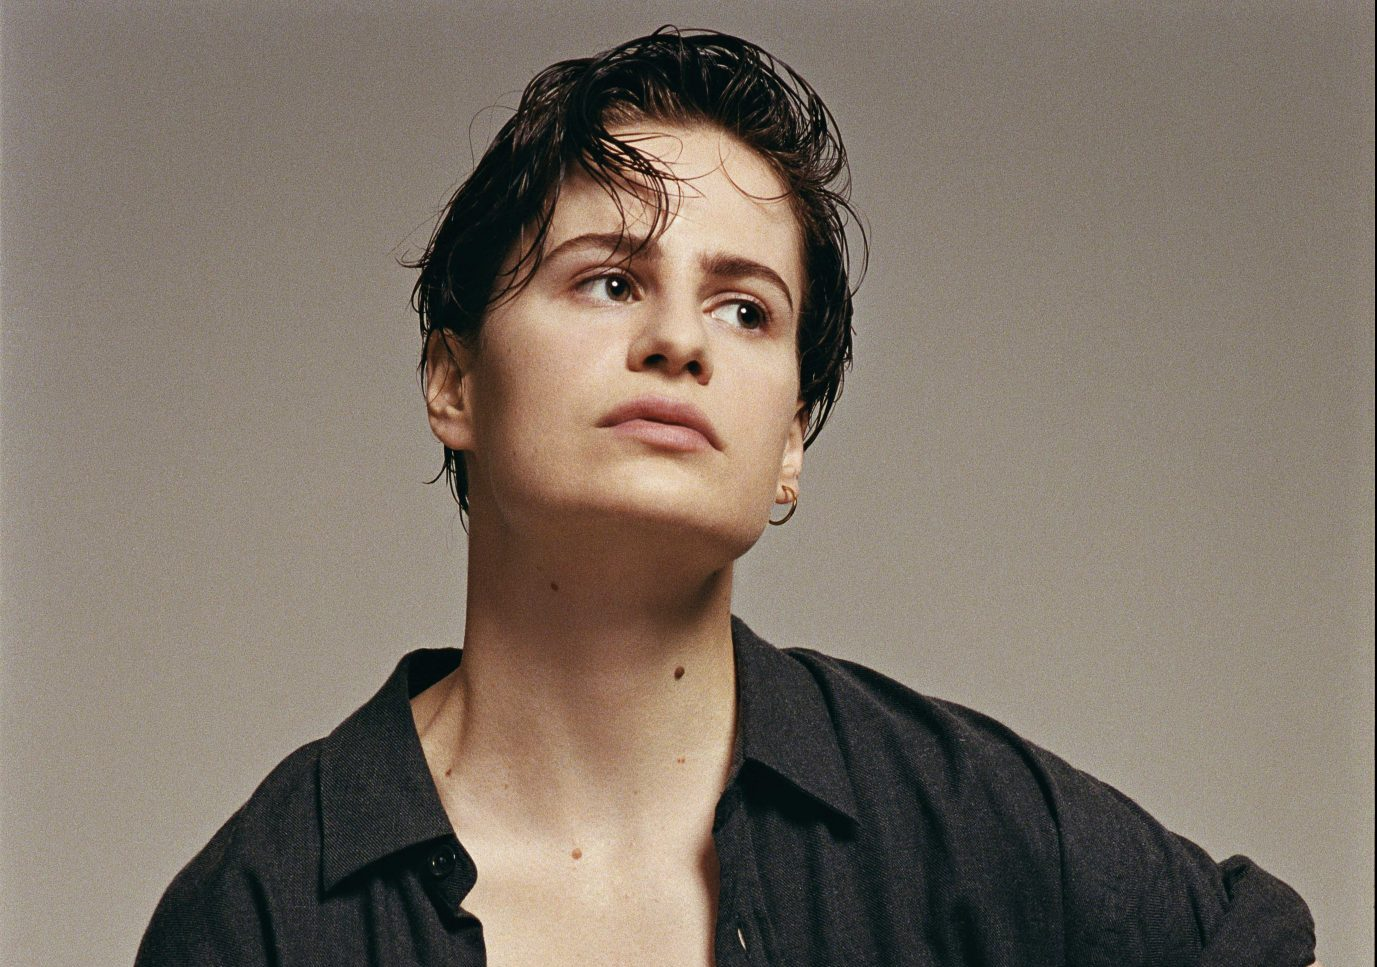 christine and the queens-new music alert-doesn't matter-by-christine and the queens-France-indie music-new music-indie pop-music blog-indie blog-wolf in a suit-wolfinasuit-wolf in a suit blog-wolf in a suit music blog